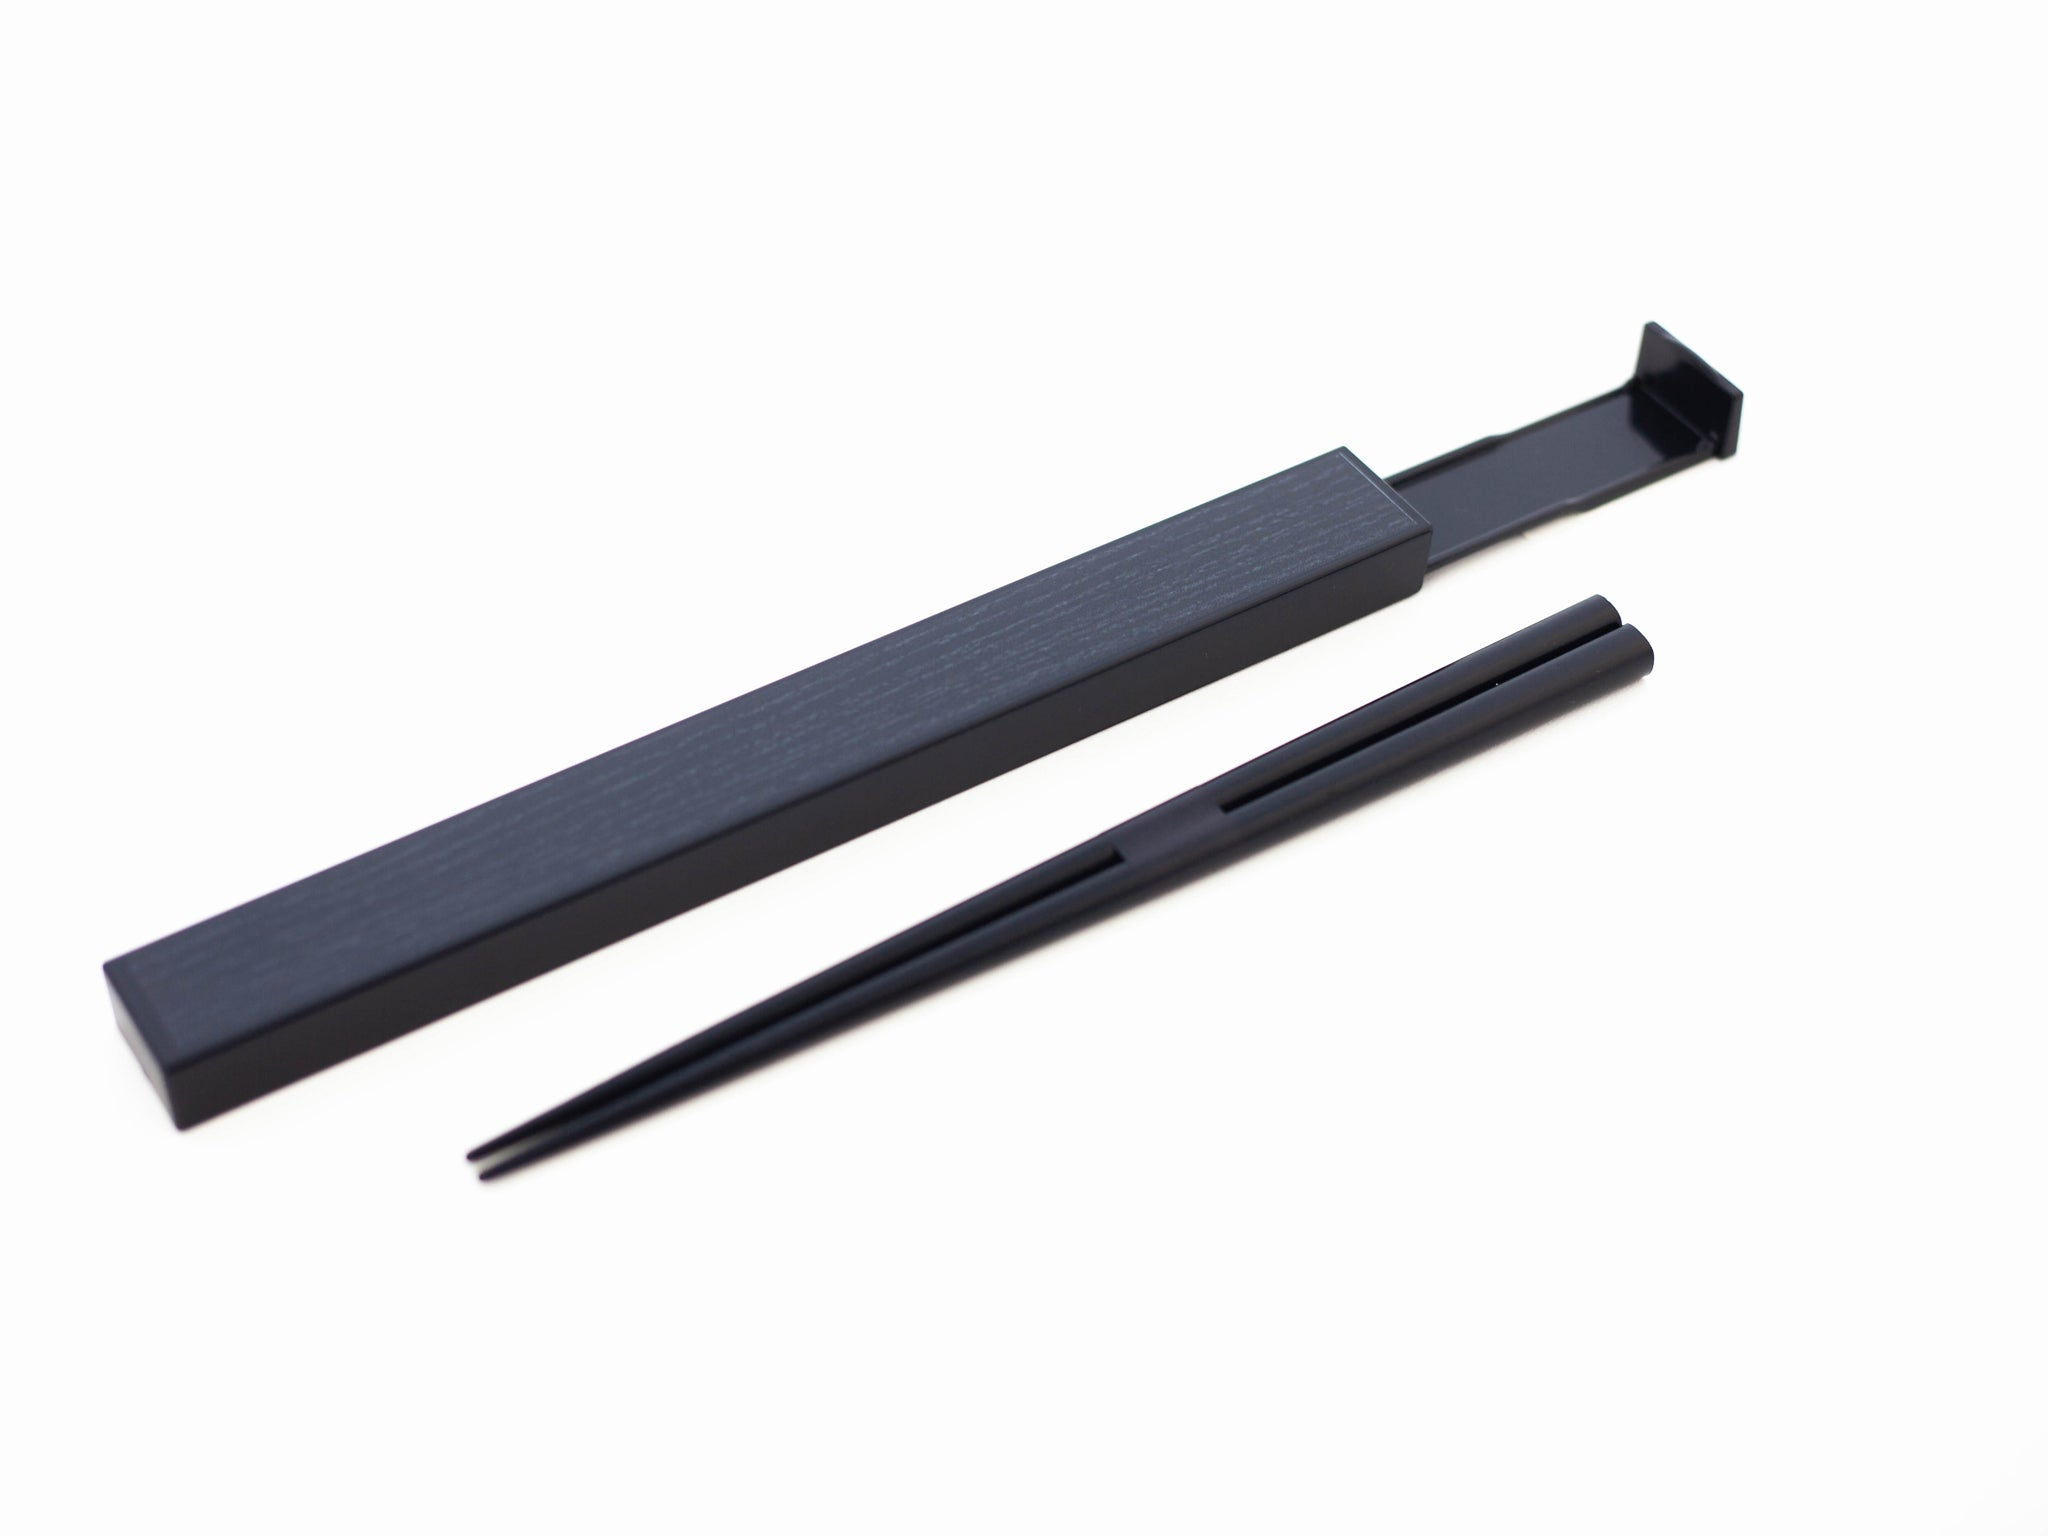 Woodgrain Chopsticks Set 21cm | Black by Hakoya - Bento&co Japanese Bento Lunch Boxes and Kitchenware Specialists